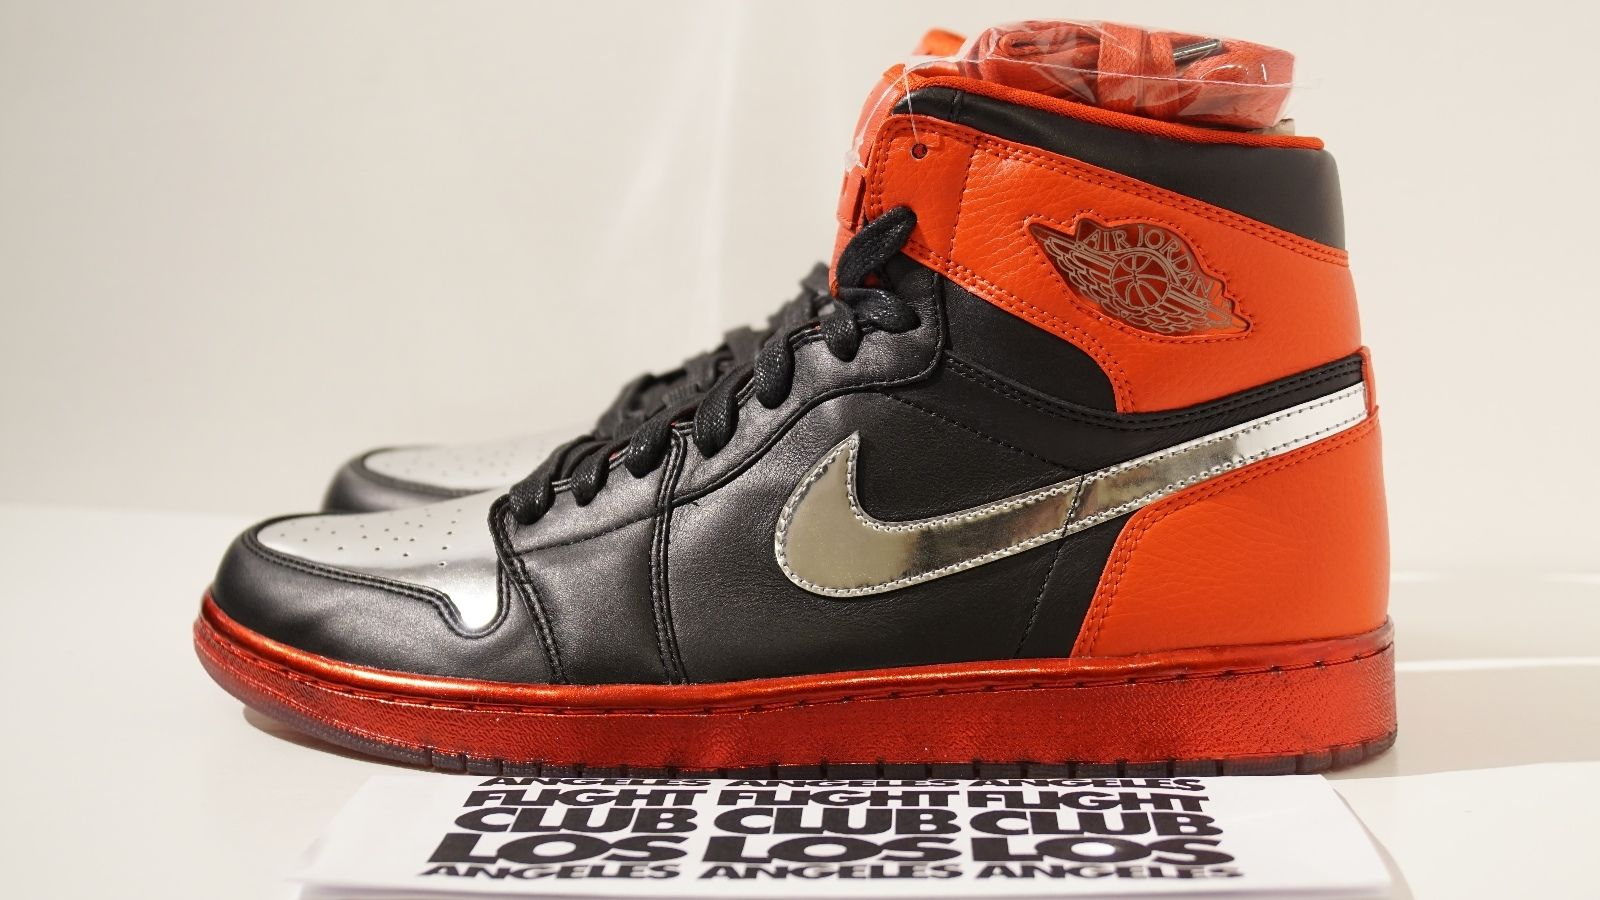 40c0e0c20c47 The 23 Most Rare and Expensive Air Jordans on eBay Right Now